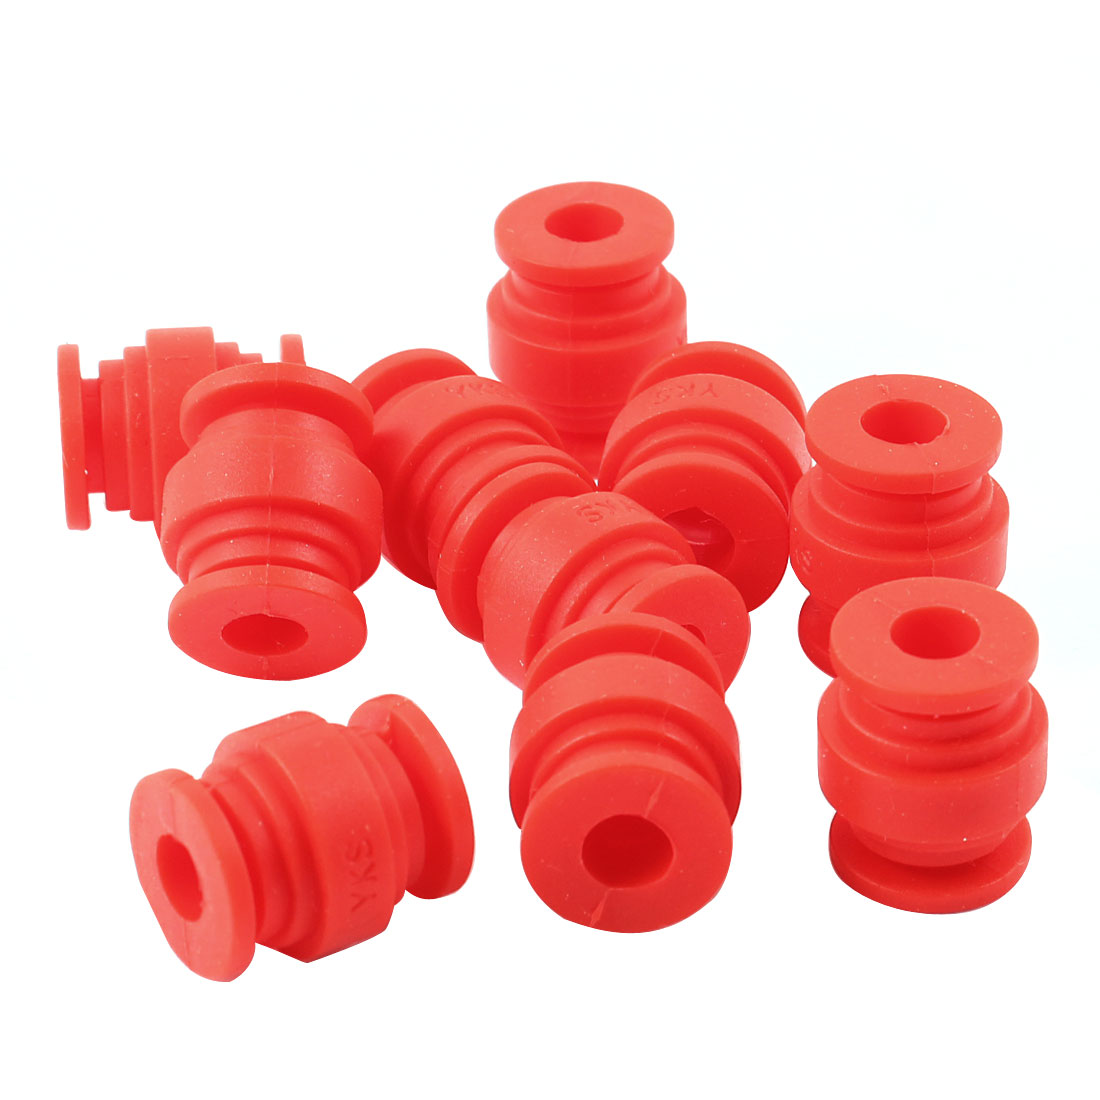 Radio-controlled Aircraft Red Rubber Shock Absorption Damping Ball 10 Pcs